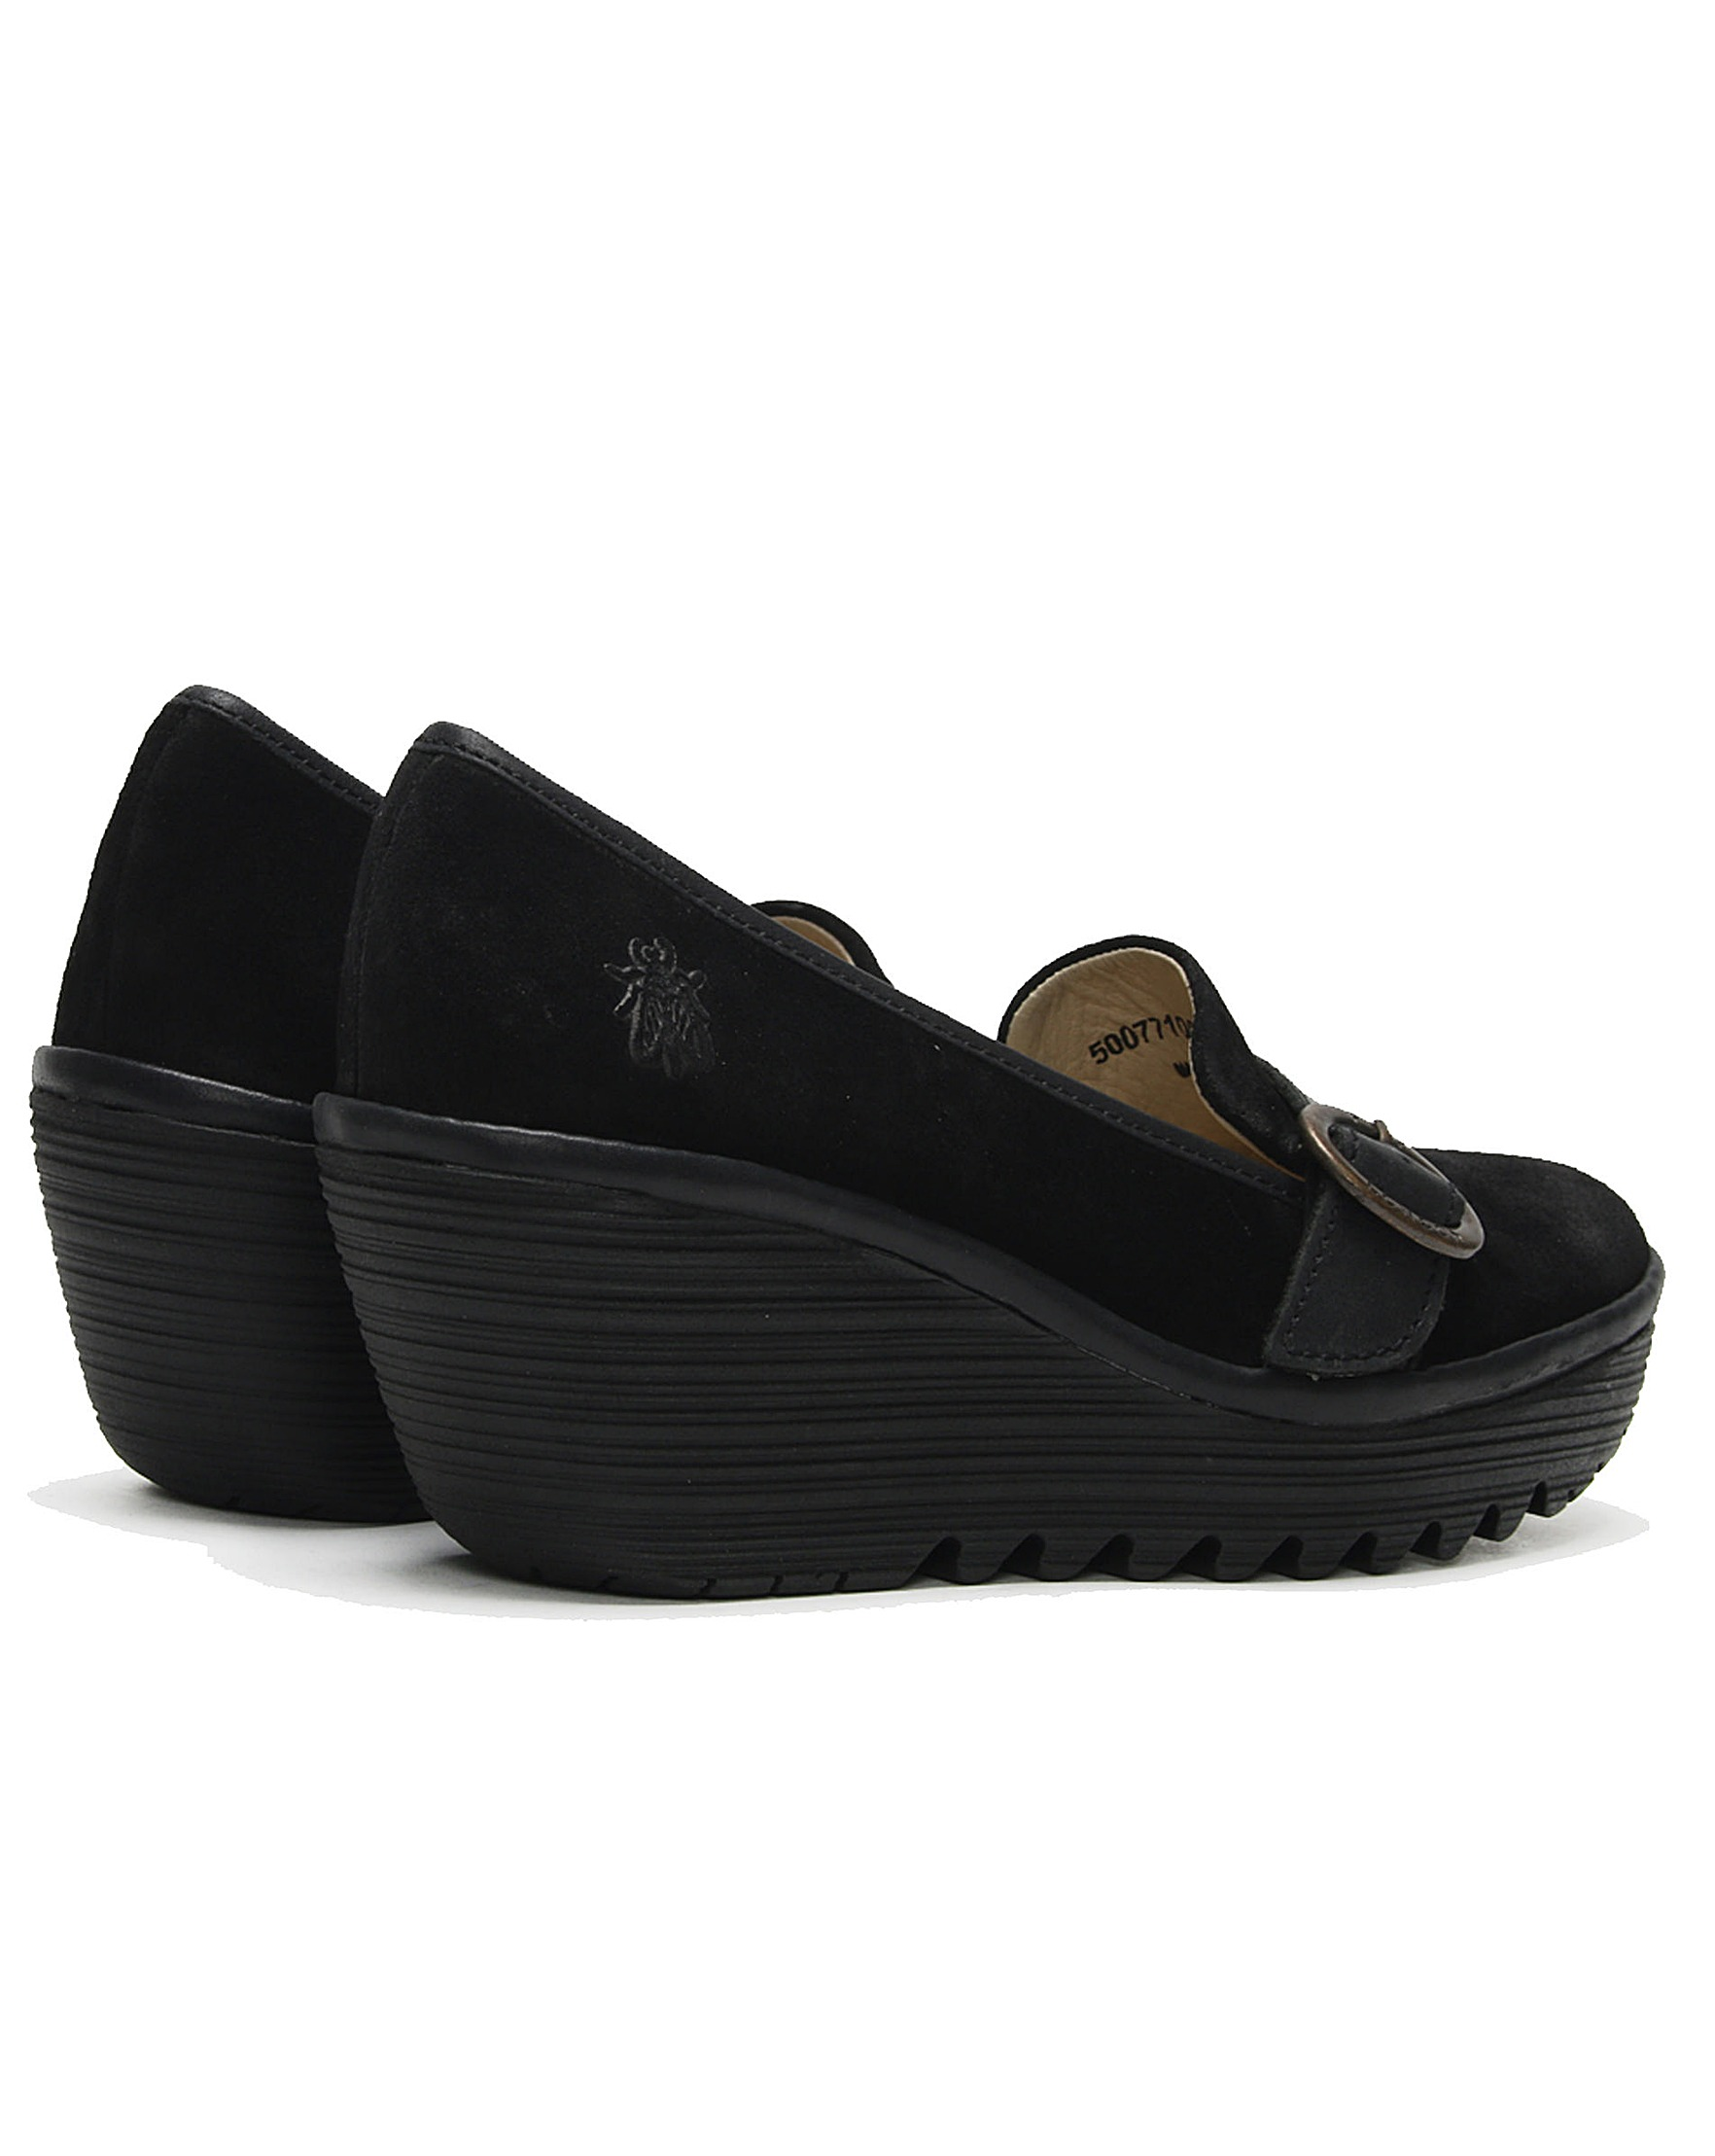 c70aa015897 Fly London Yond Suede Wedge Loafers